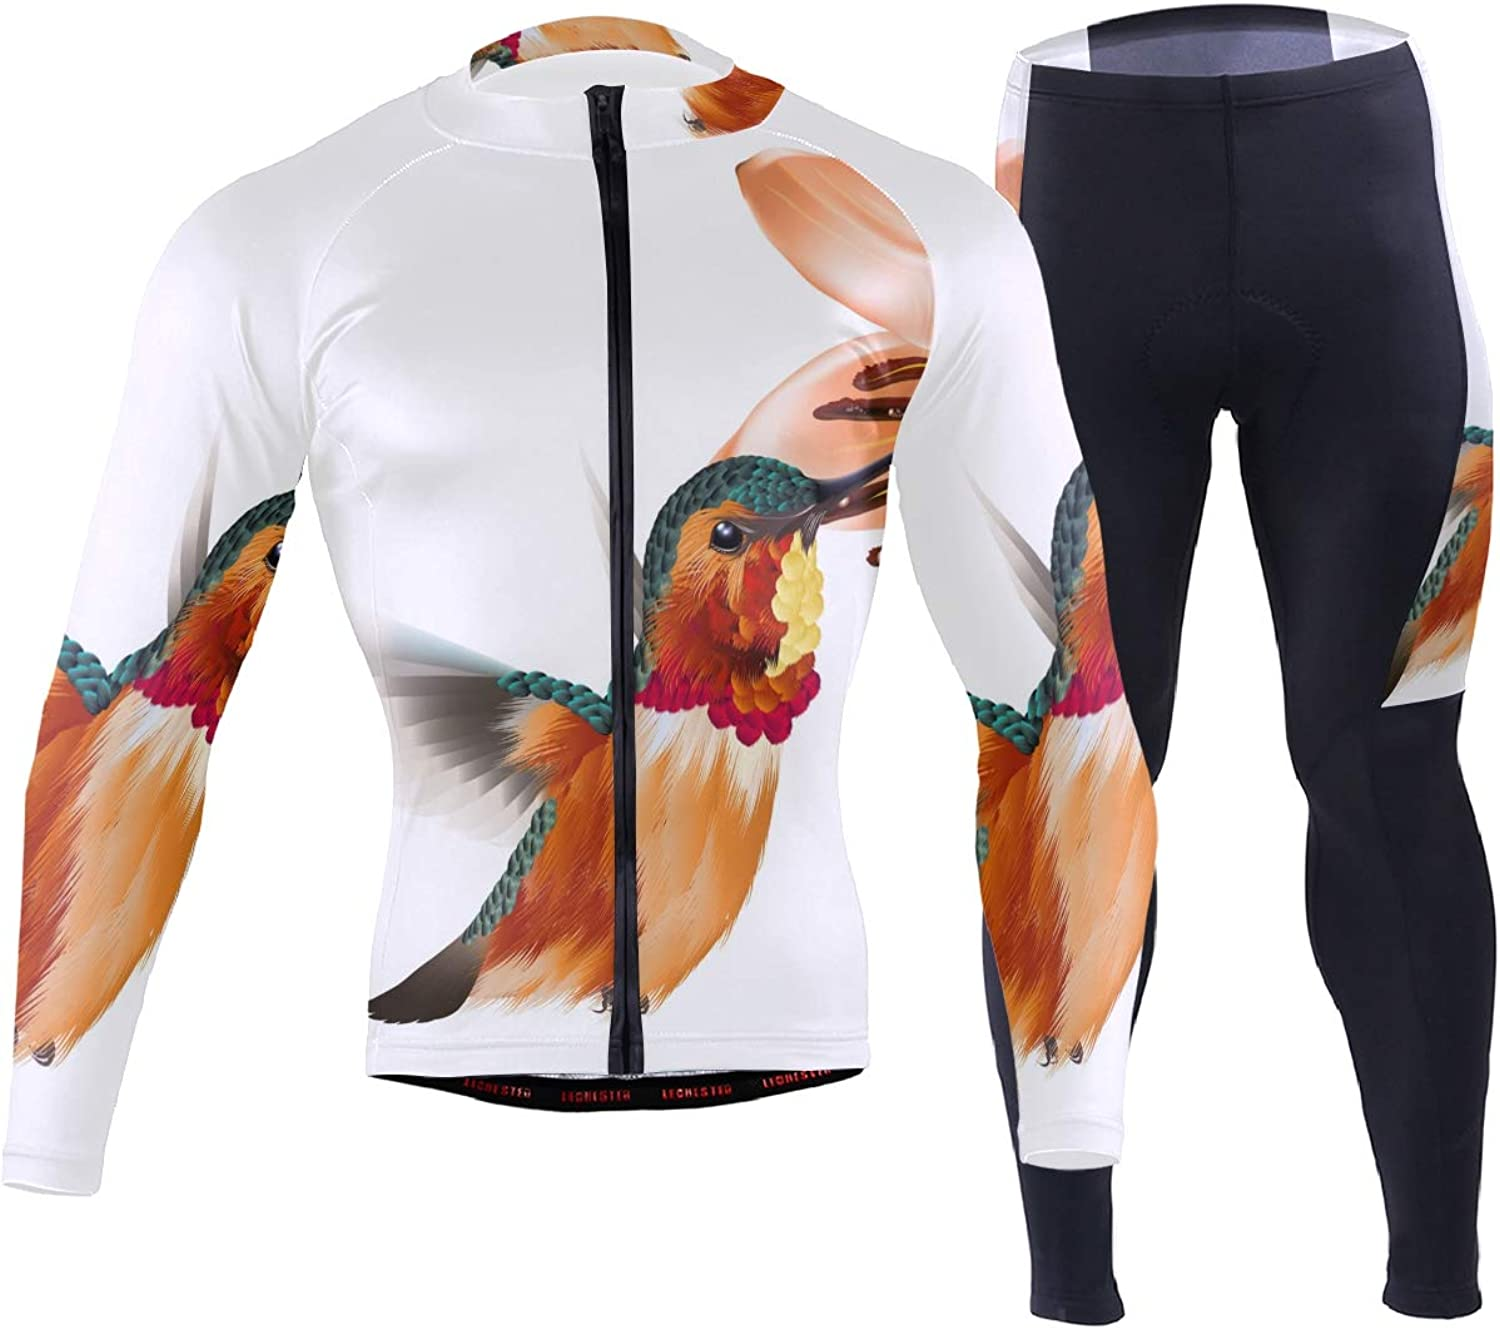 FAJRO Bird Pollen Pattern Sportswear Suit Bike Outfit Set Breathable Quick Dry 3D Padded Pants